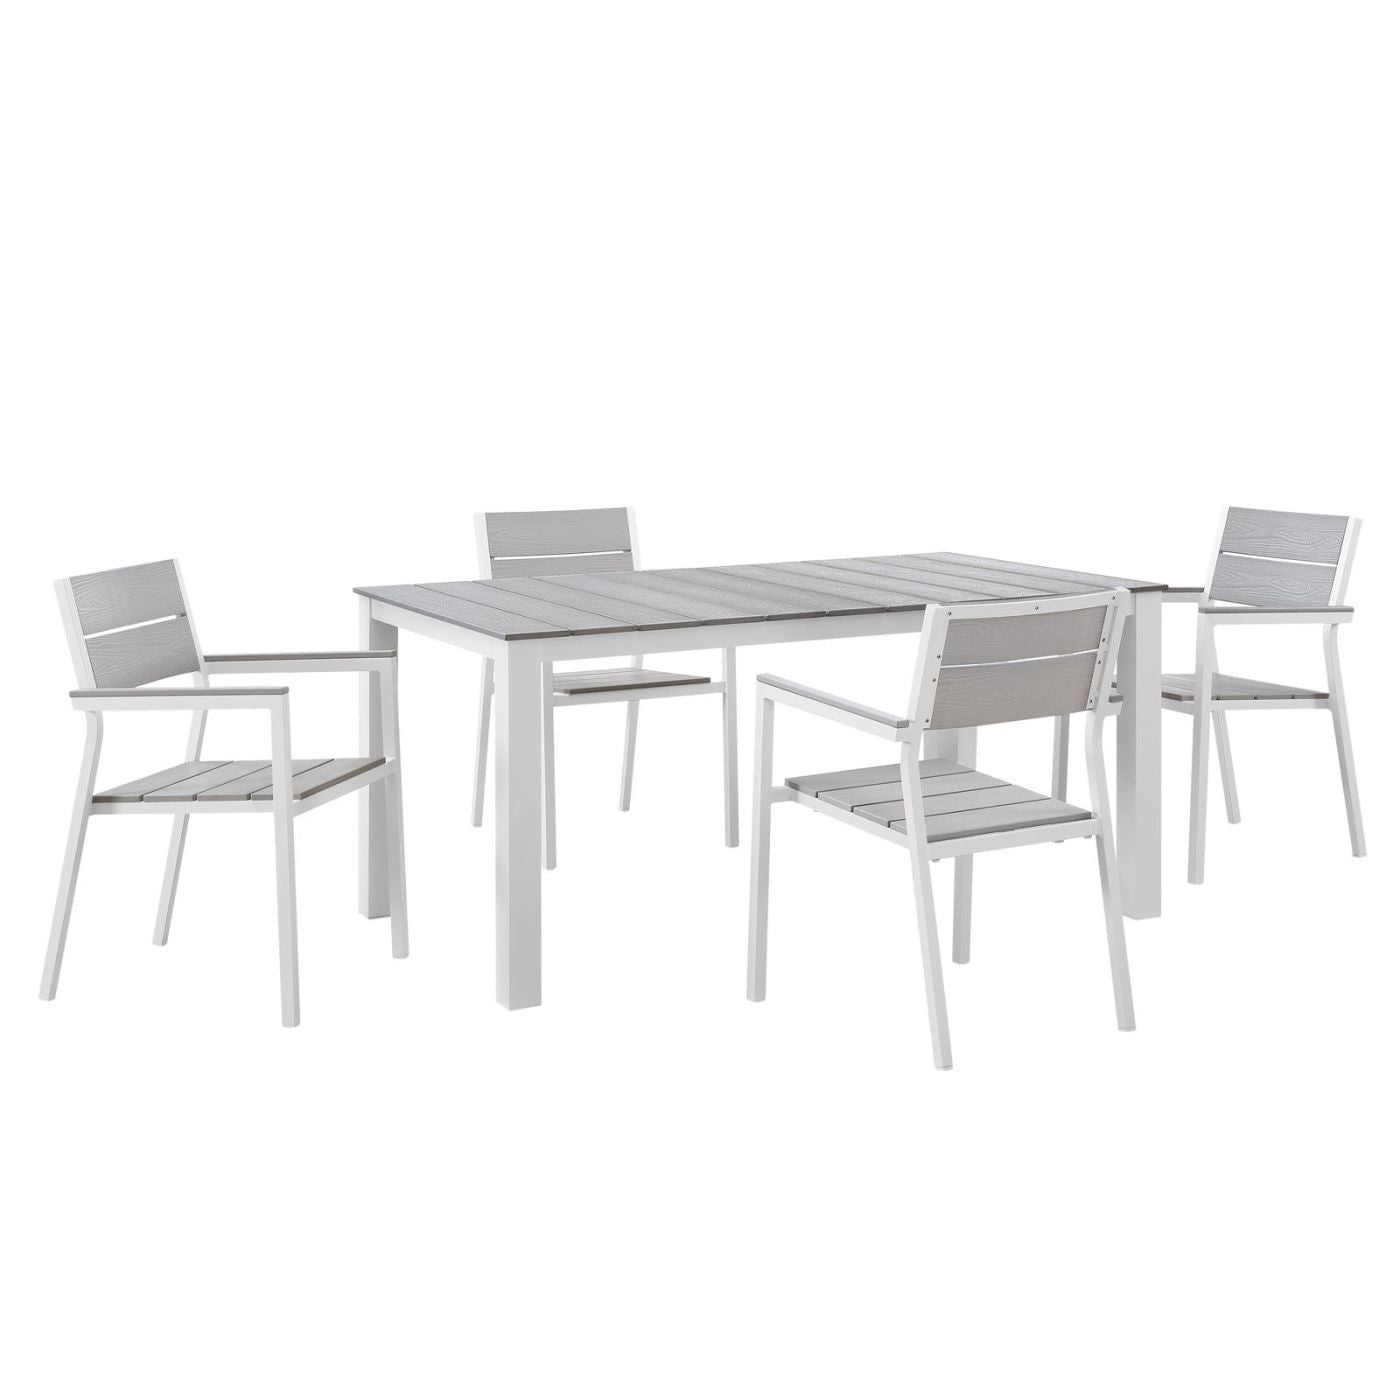 Phenomenal Modway Outdoor Dining Sets On Sale Eei 1747 Whi Lgr Set Maine Modern 5 Piece Outdoor Patio Dining Set Solid Light Gray Wood Only Only 891 80 At Beutiful Home Inspiration Ommitmahrainfo